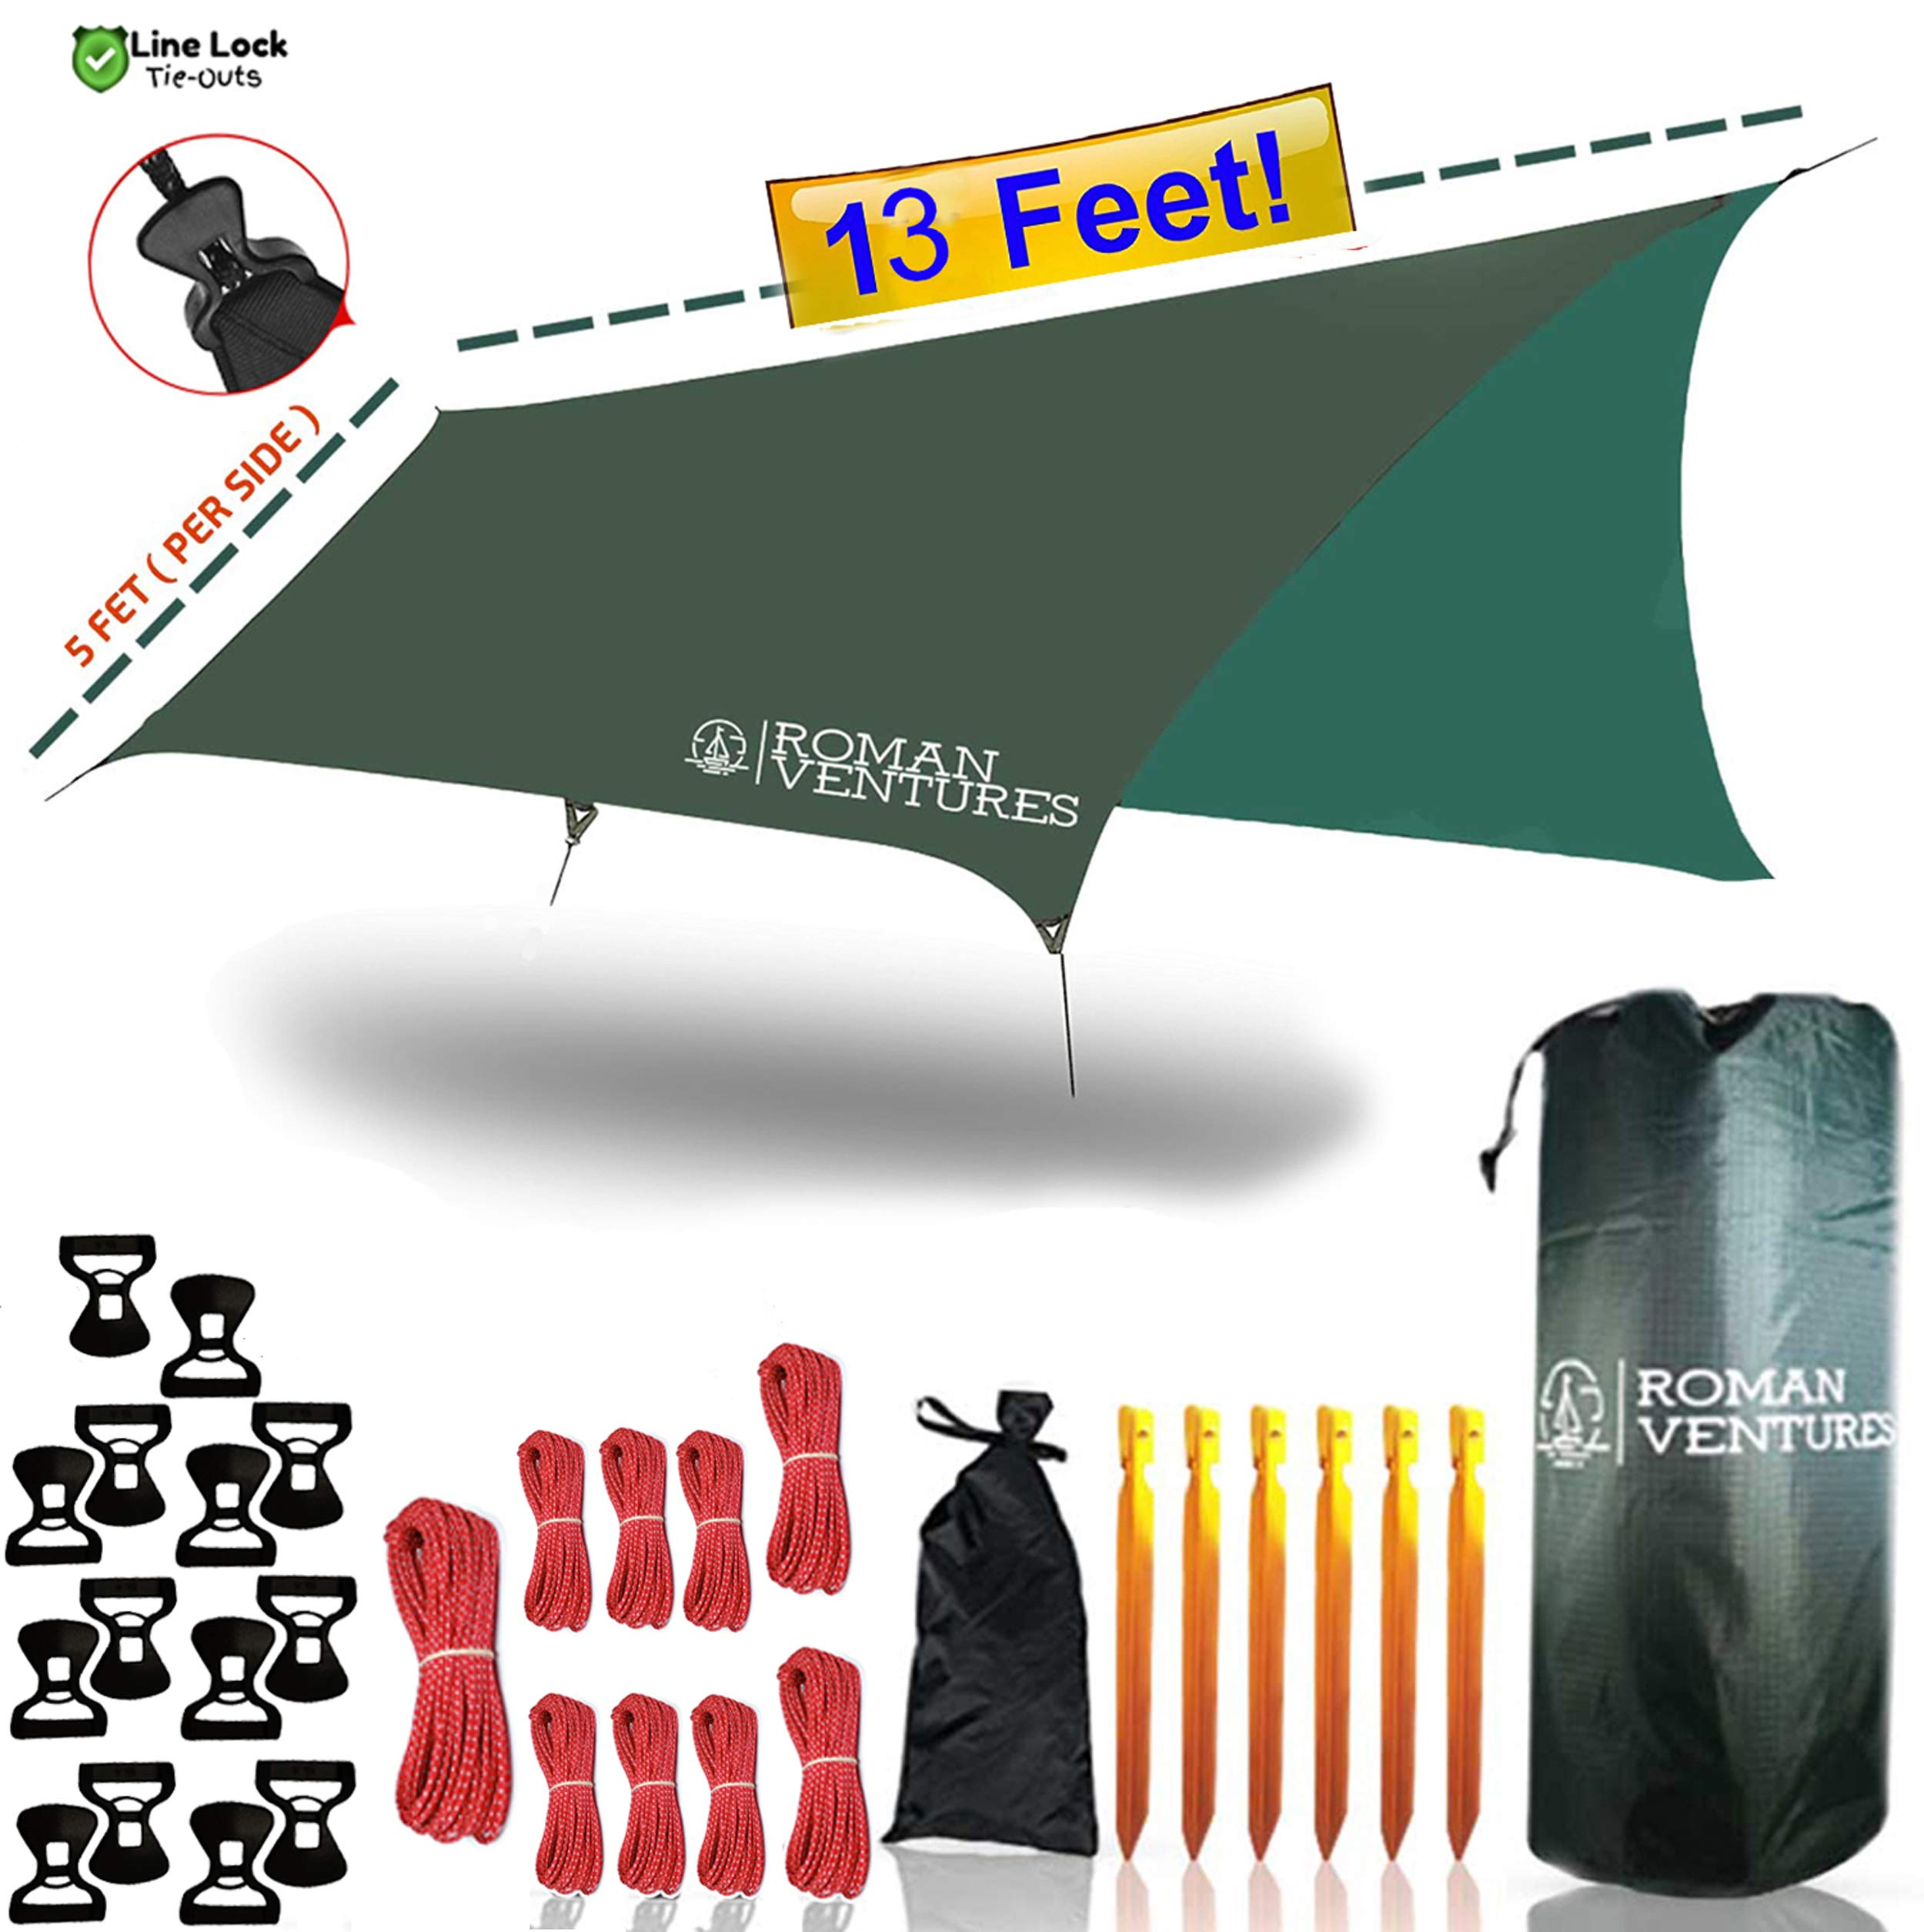 Roman Ventures 13 Foot Rain Fly for Hammock -Light Weight, Diamond-Ripstop Polyester Hammock Rainfly- 2000 PU Waterproof Eno Rain Cover- Rainfly Backpacking Tarp (13 Foot Rectangle) by Roman Ventures